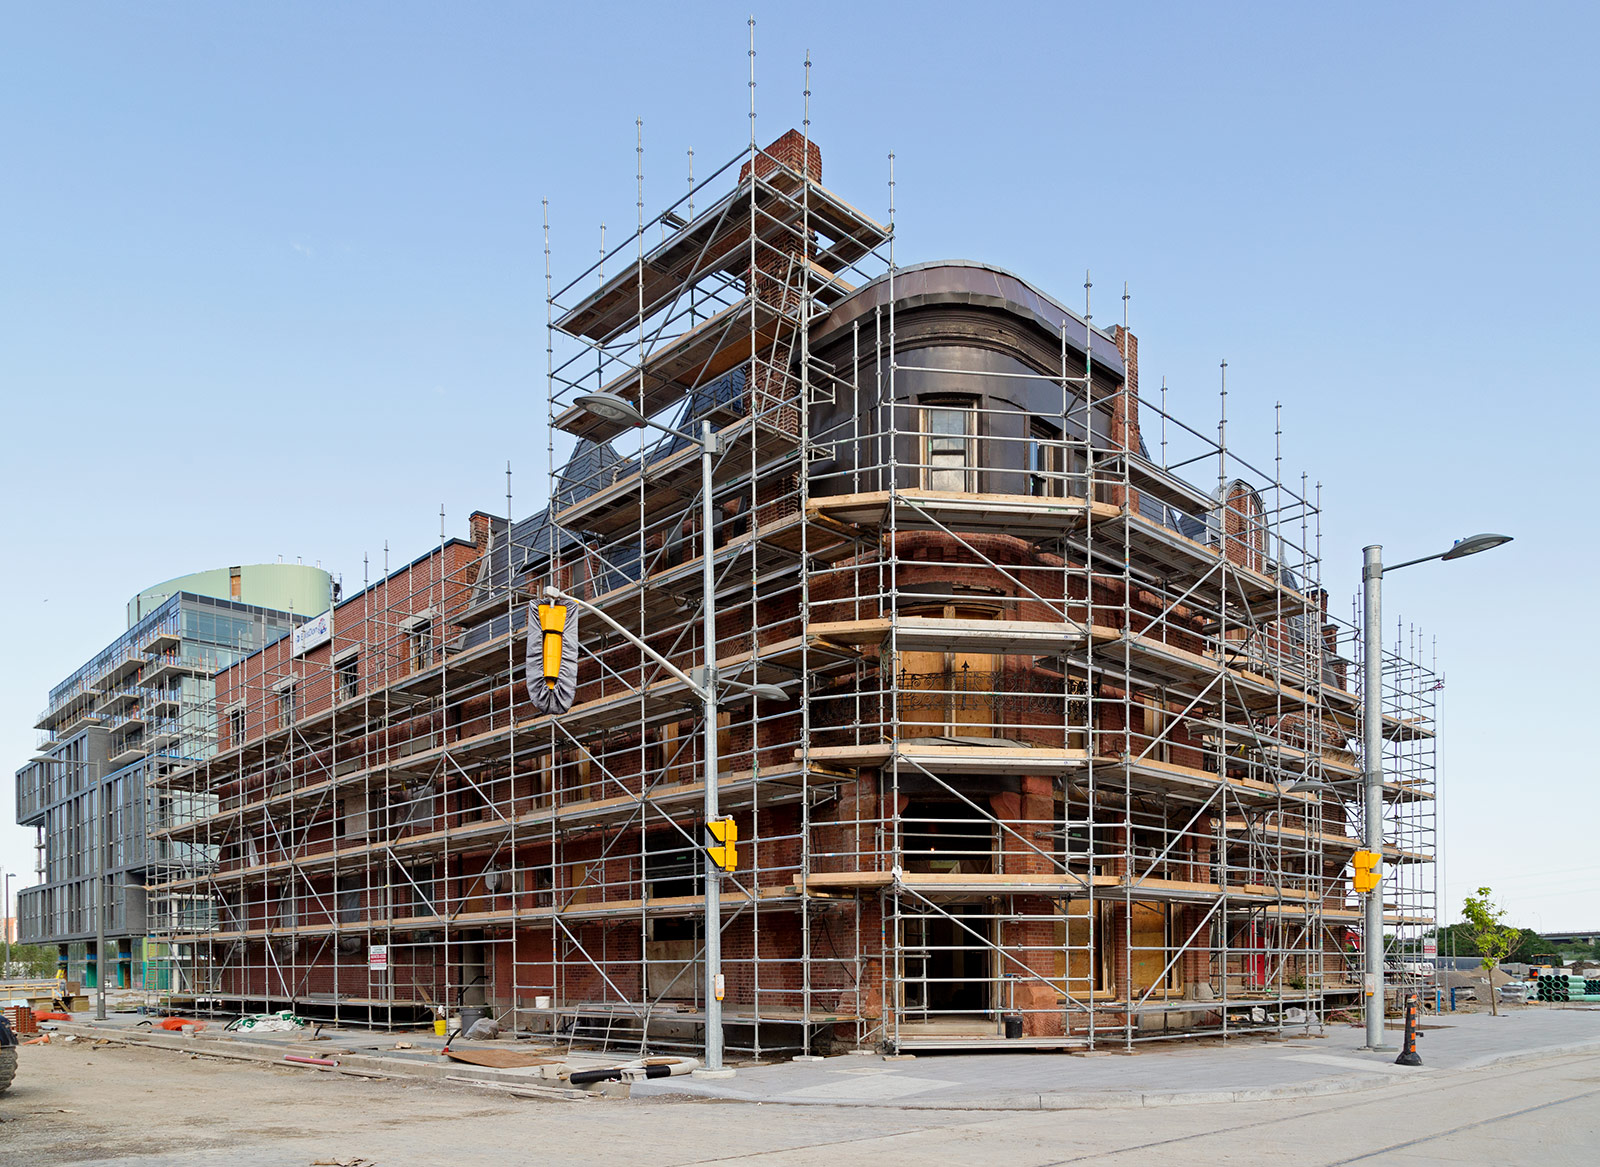 20140626. The old Canary Restaurant (c.1859), covered in platform rigging, is getting a facelift (PanAM Athlete's Village or Canary District, Toronto).